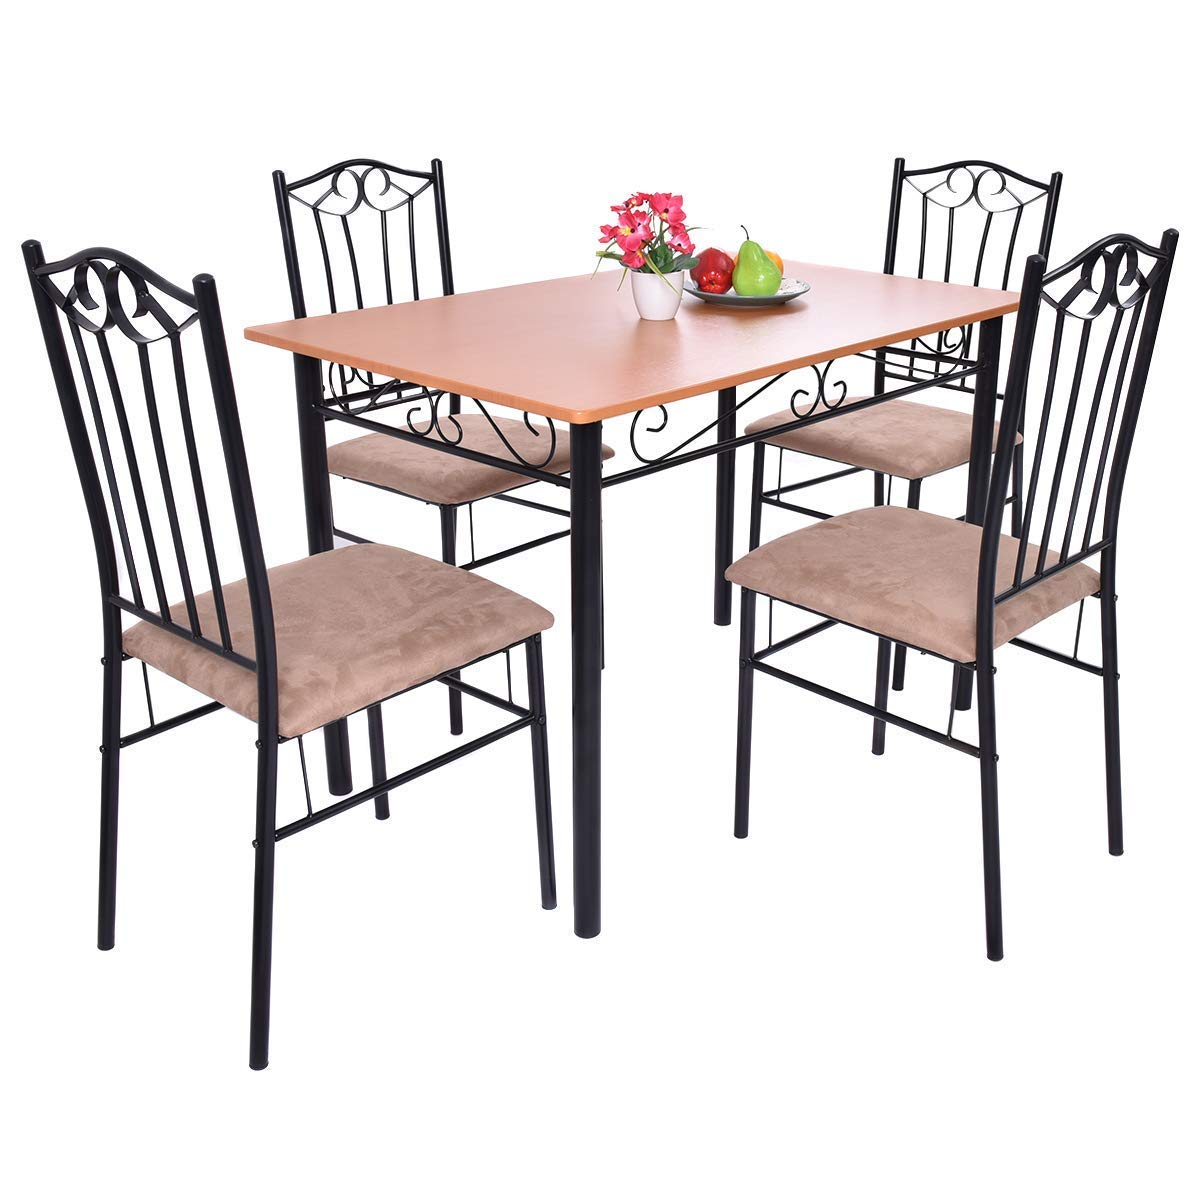 Casart 5 PCS Dining Table Set Vintage Wood Top Padded Seat Dining Table and Chair Set Home Kitchen Dining Room Furniture